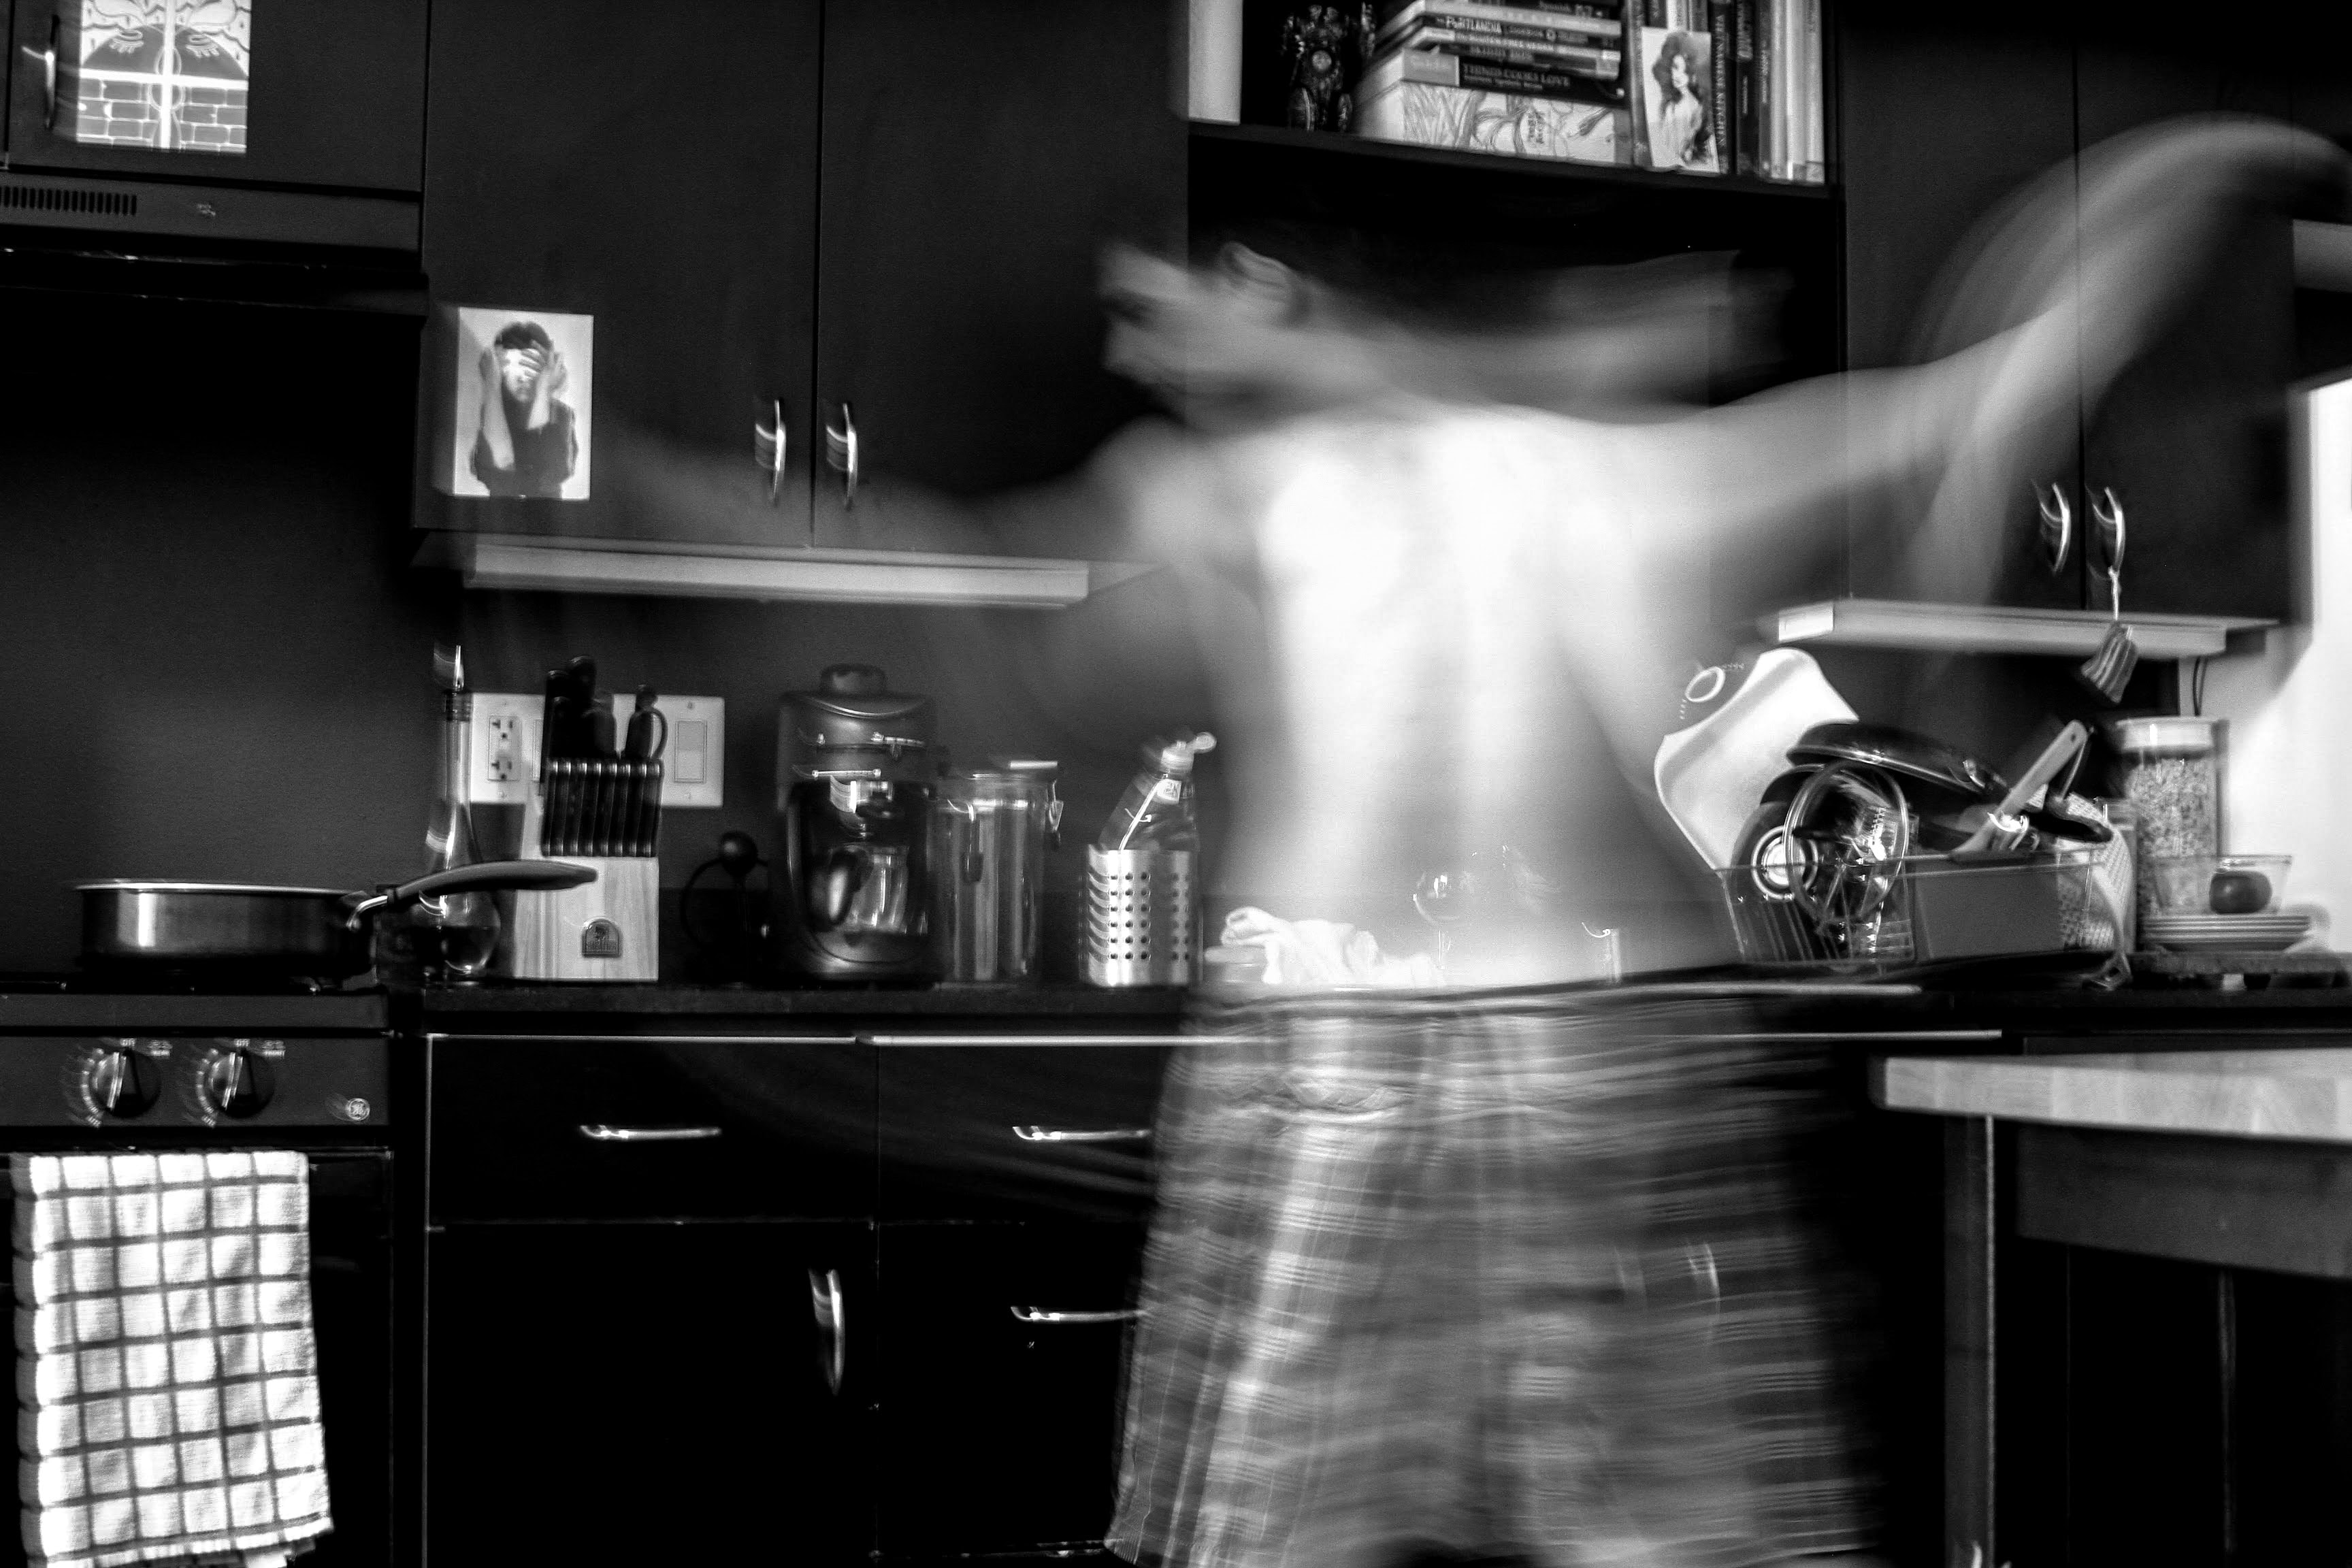 Black and white blurred motion shot of topless man in pyjama bottoms moving energetically in kitchen